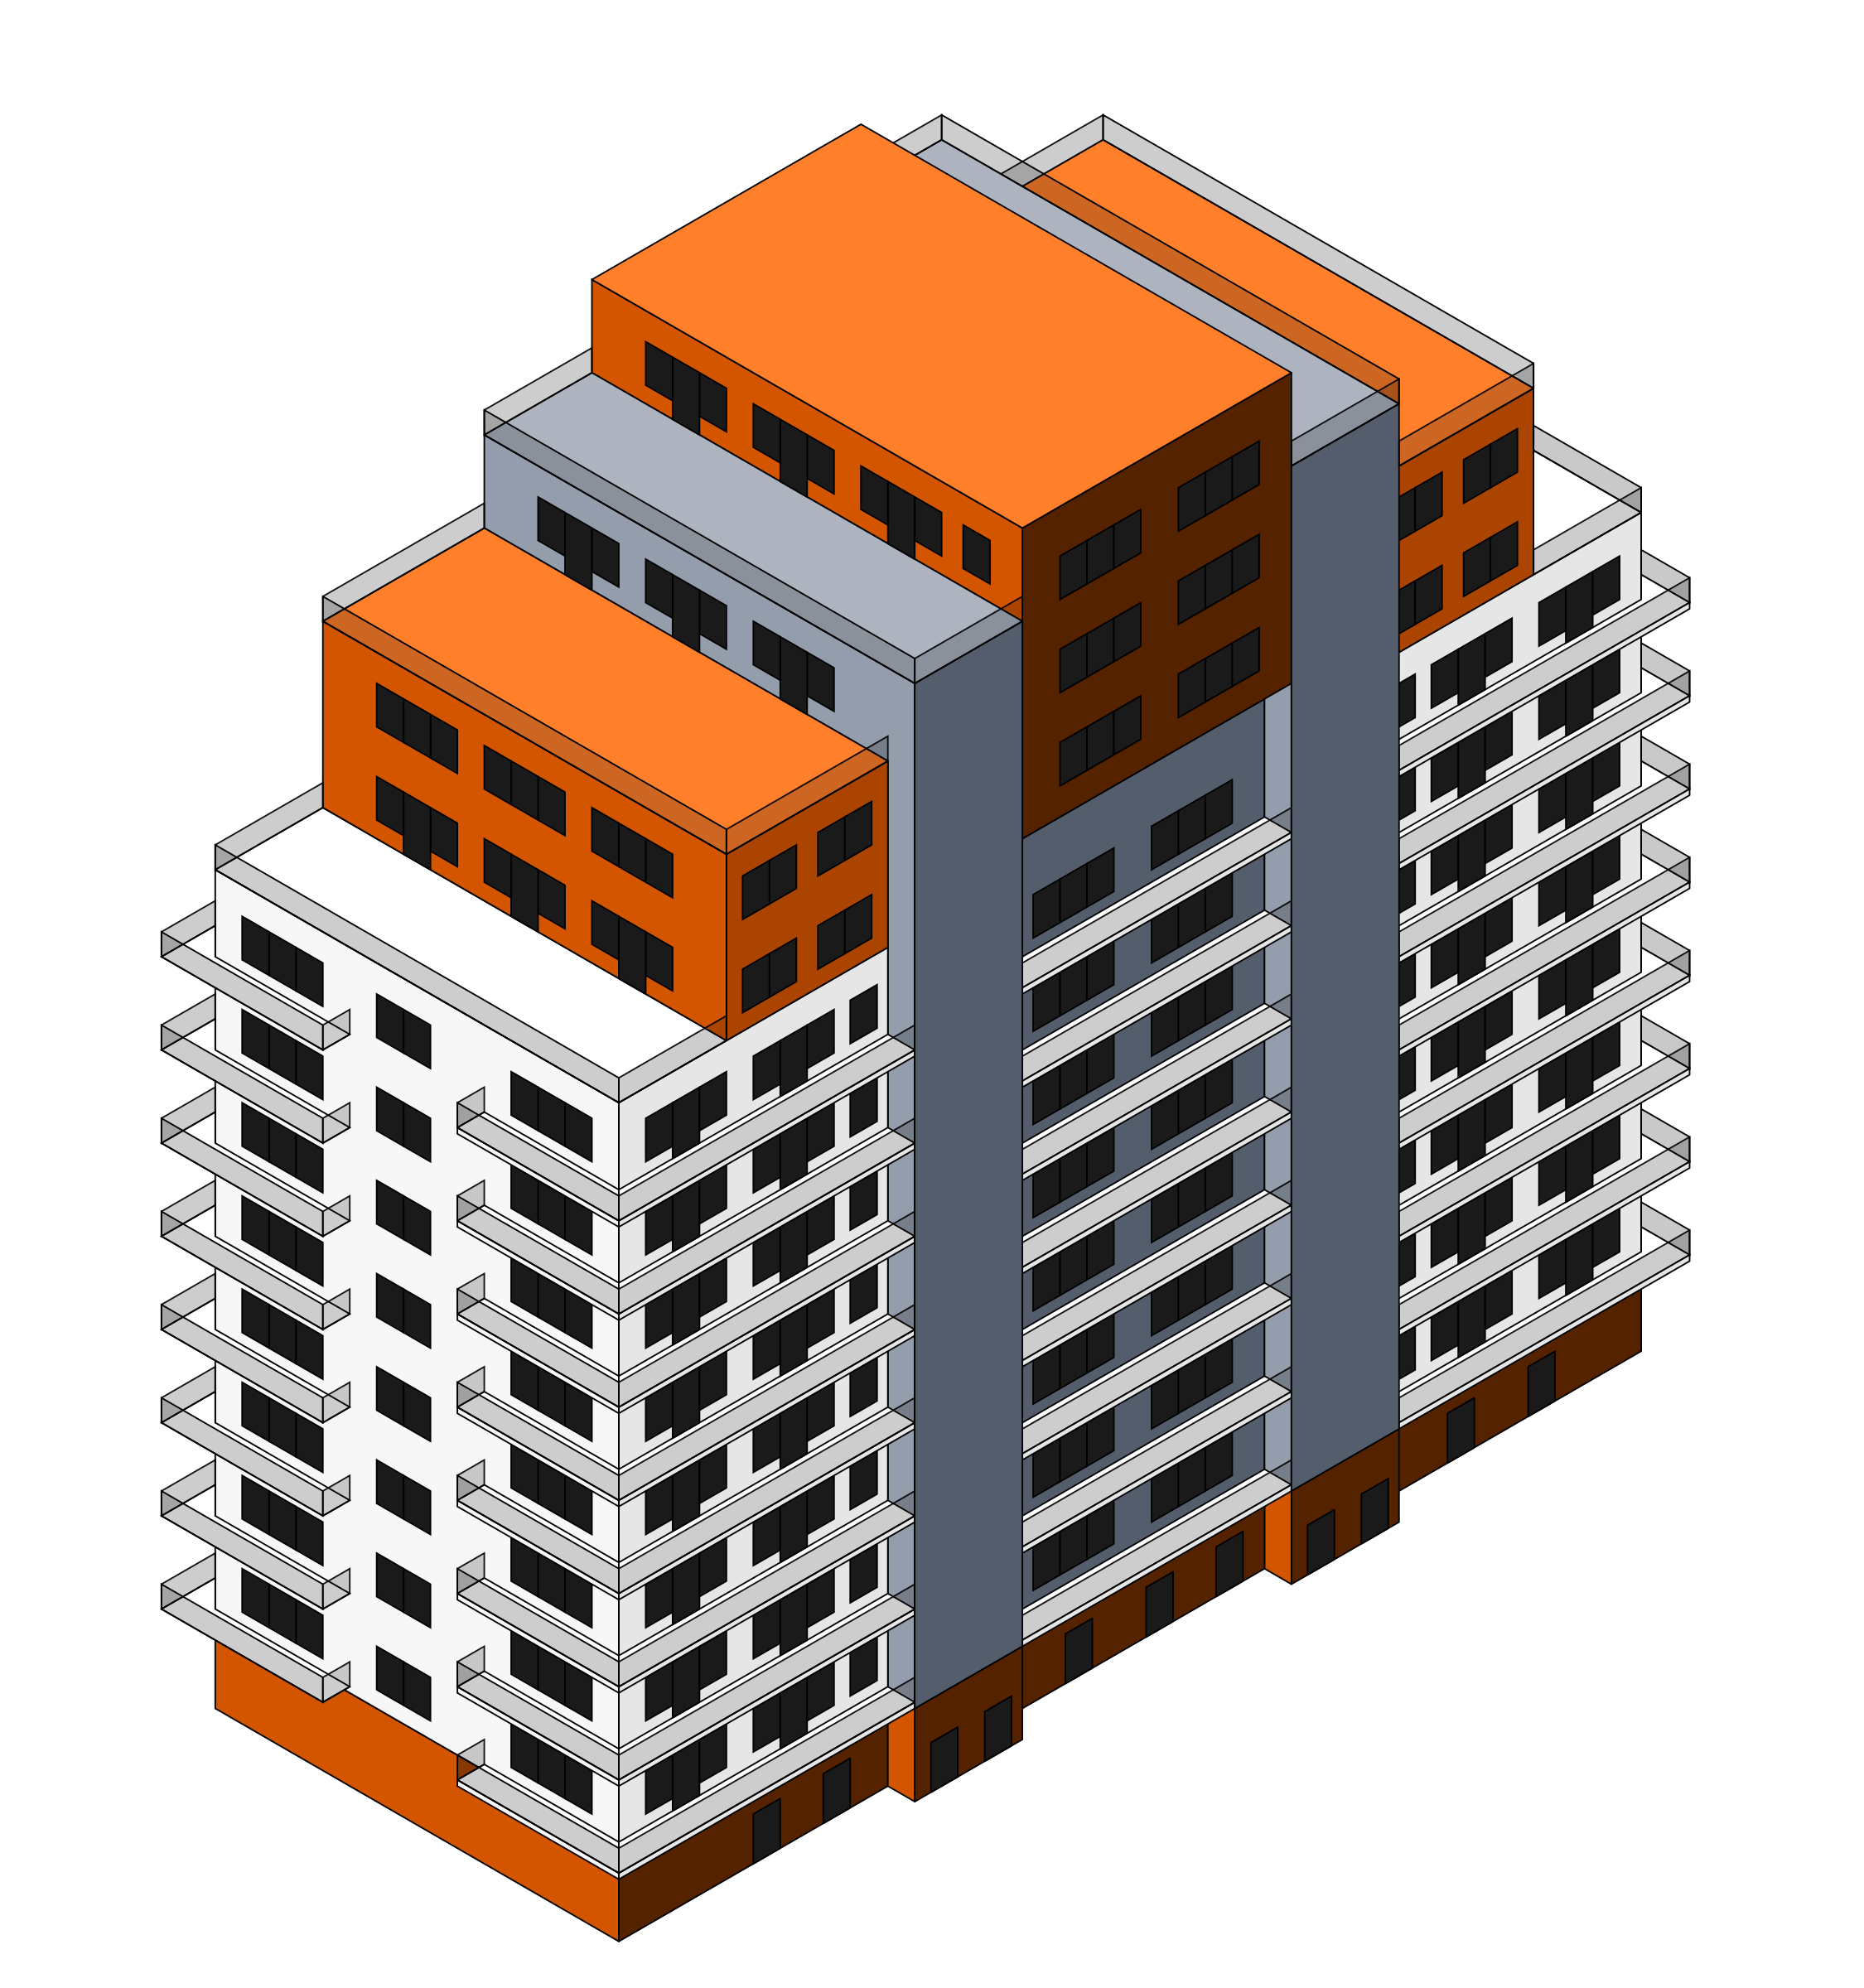 Floor clipart isometric. Building icons png free